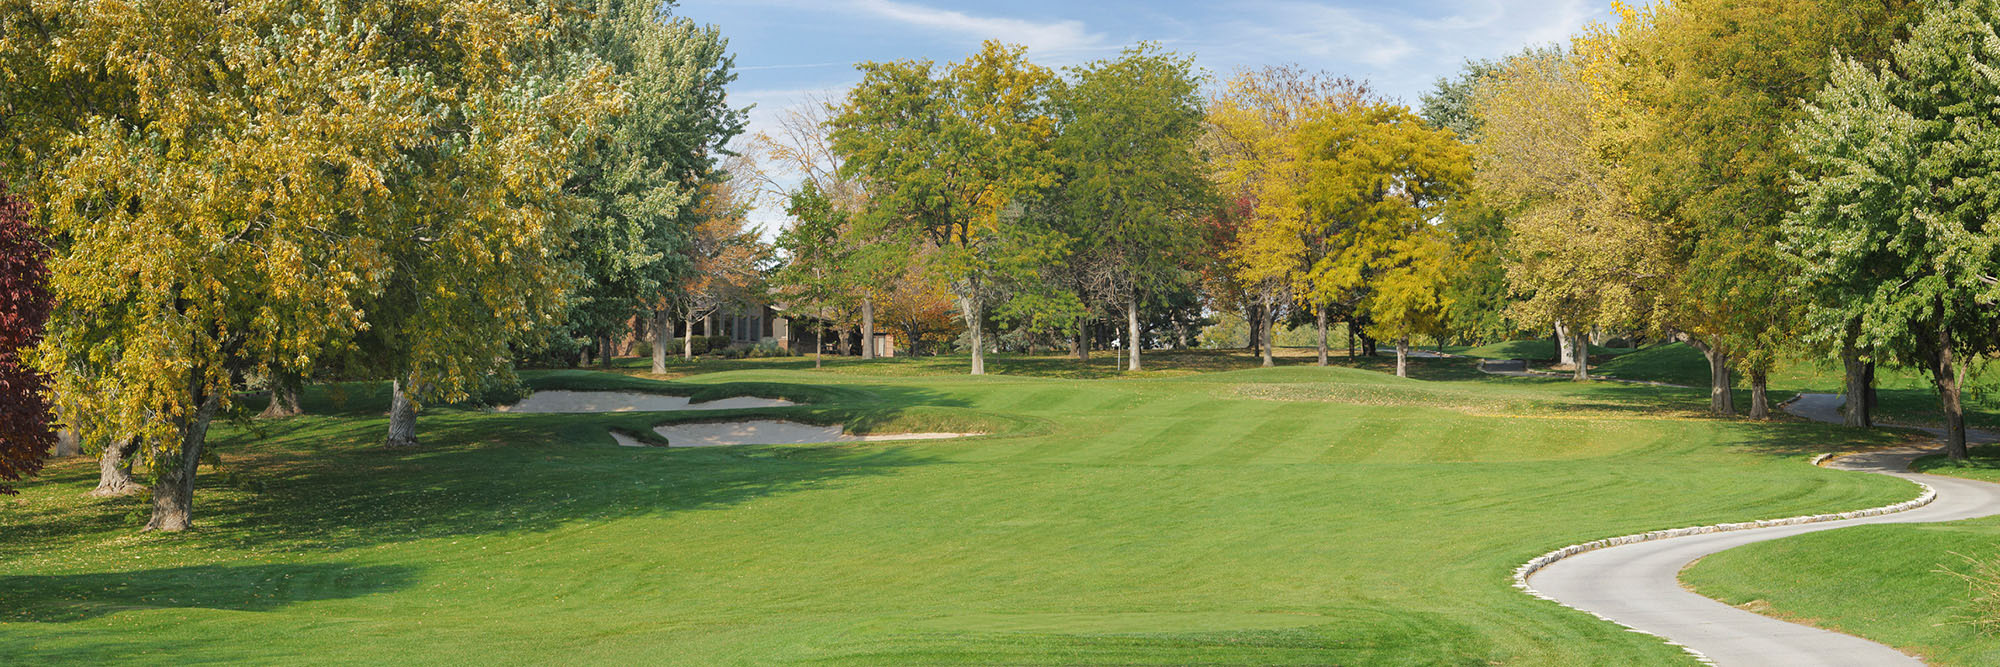 Golf Course Image - Oak Hill No. 4